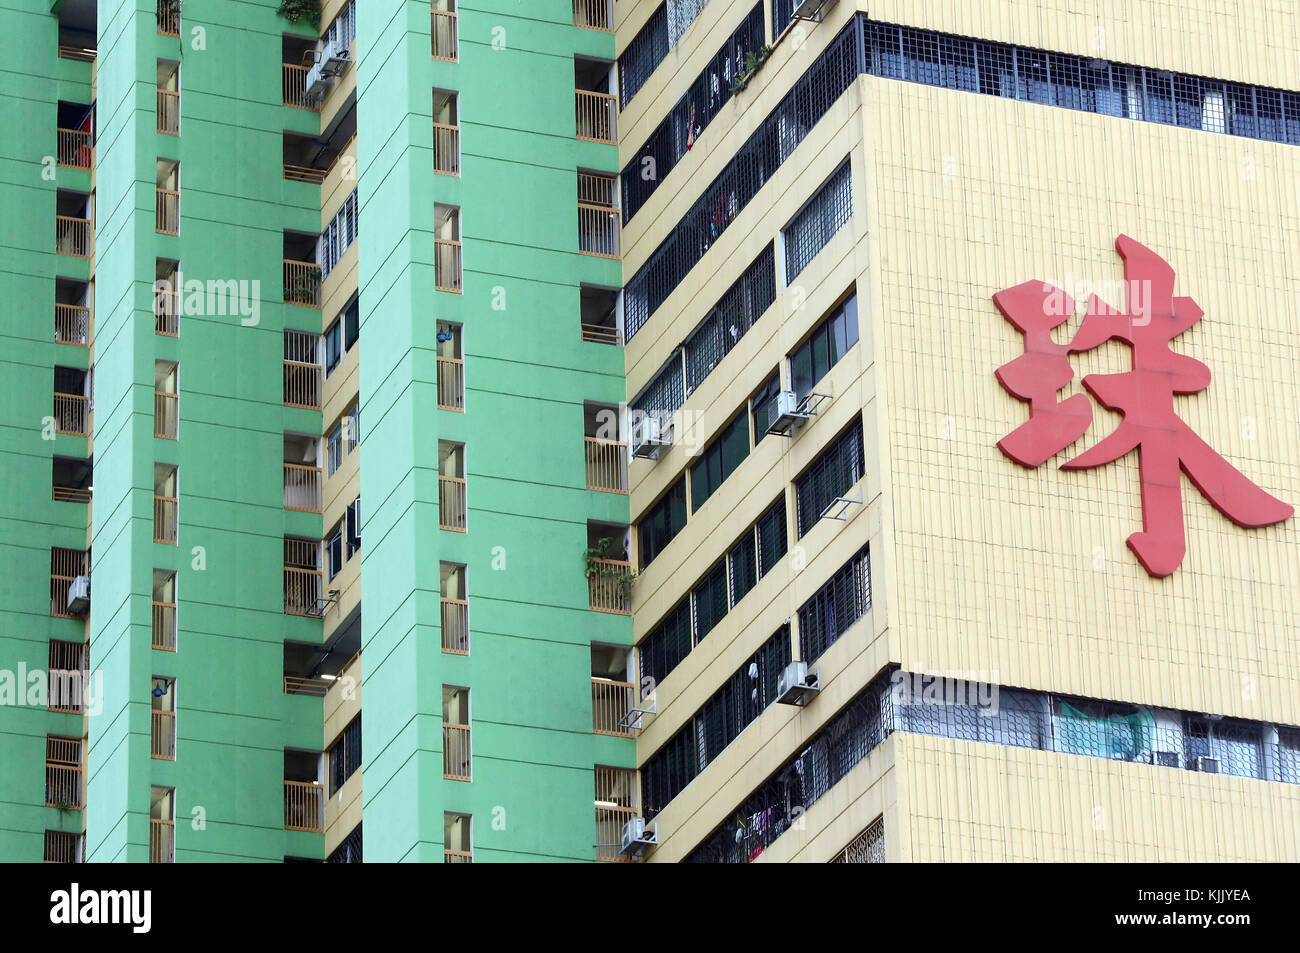 Chinatown, residential building.  Singapore. - Stock Image